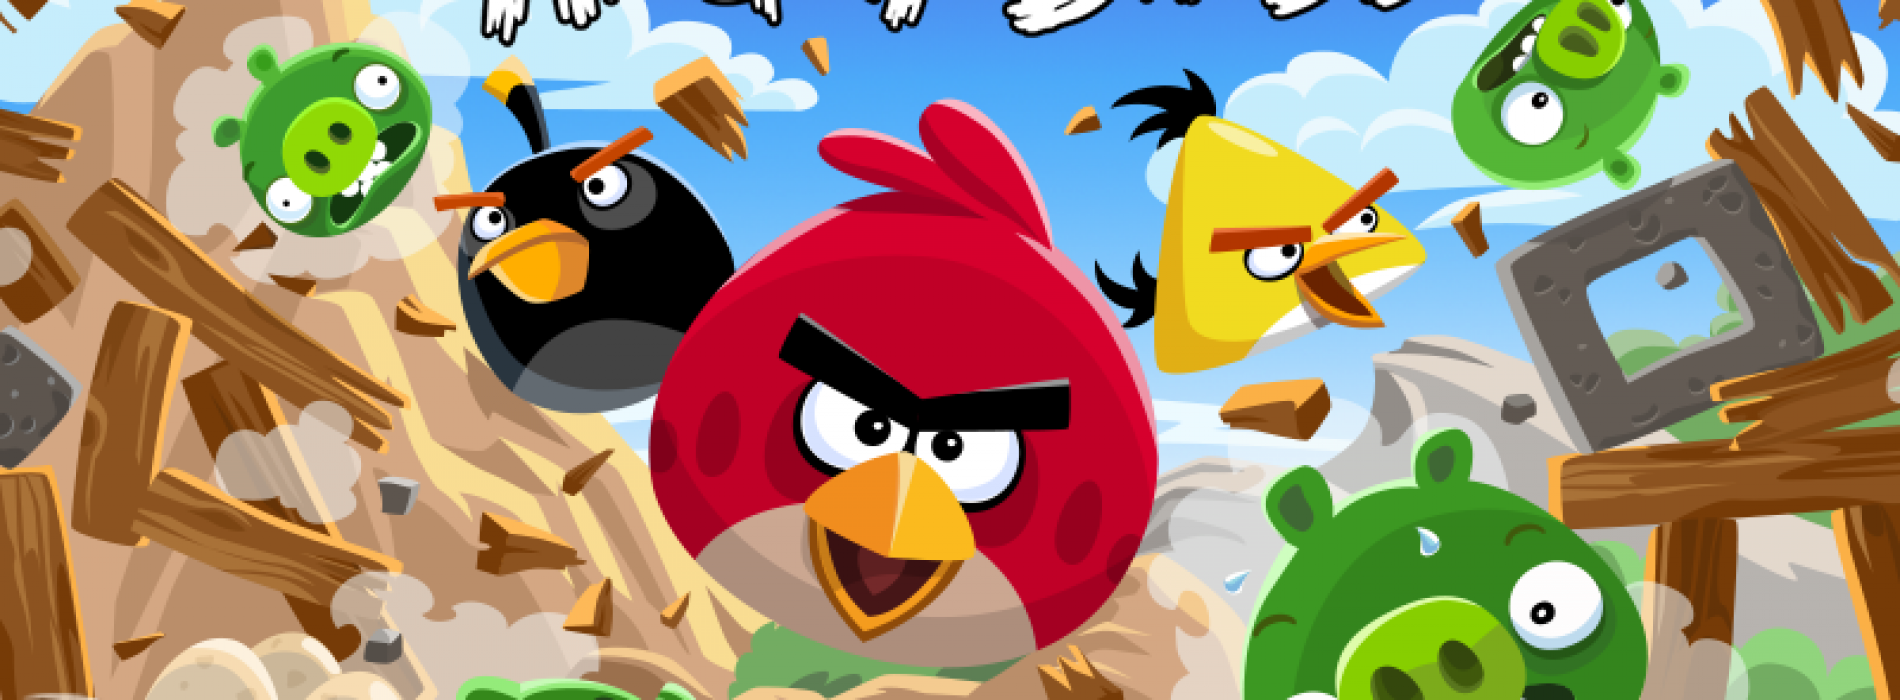 Rovio celebrates 4th birthday of Angry Birds with 15 new 'Birdday Party' levels